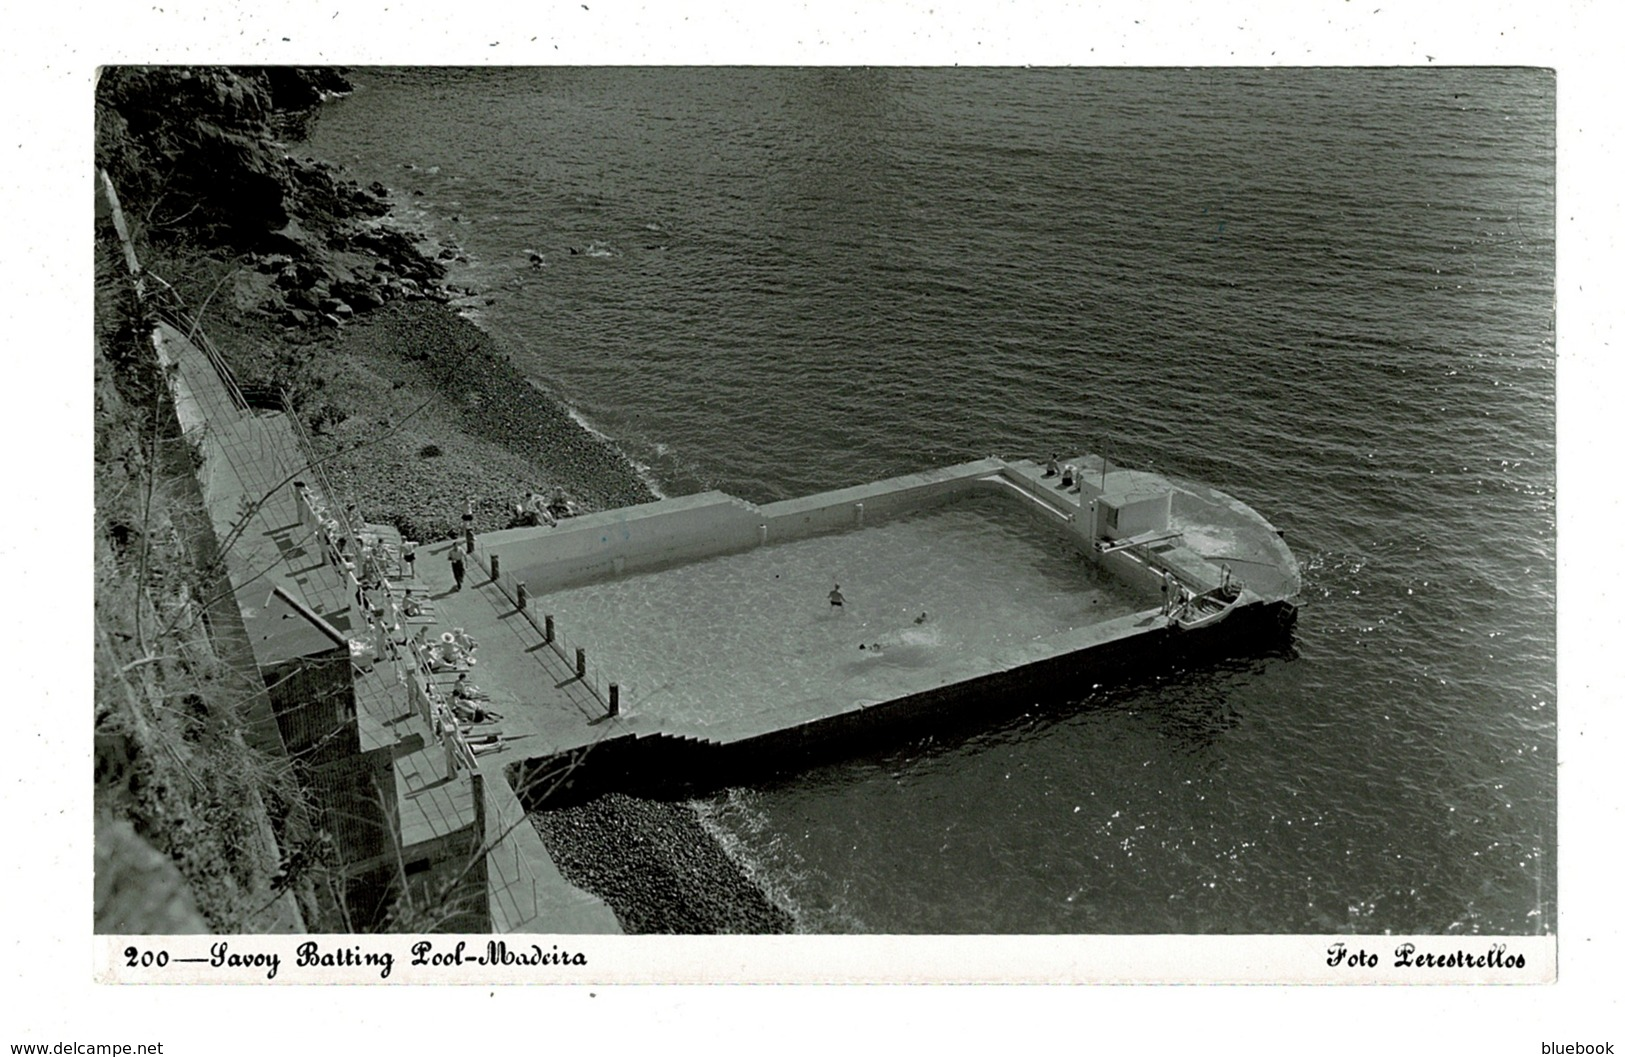 Ref 1313 - 1953 Real Photo Postcard - Savoy Bathing Pool - Madeira Portugal 1$50 Rate To UK - Madeira